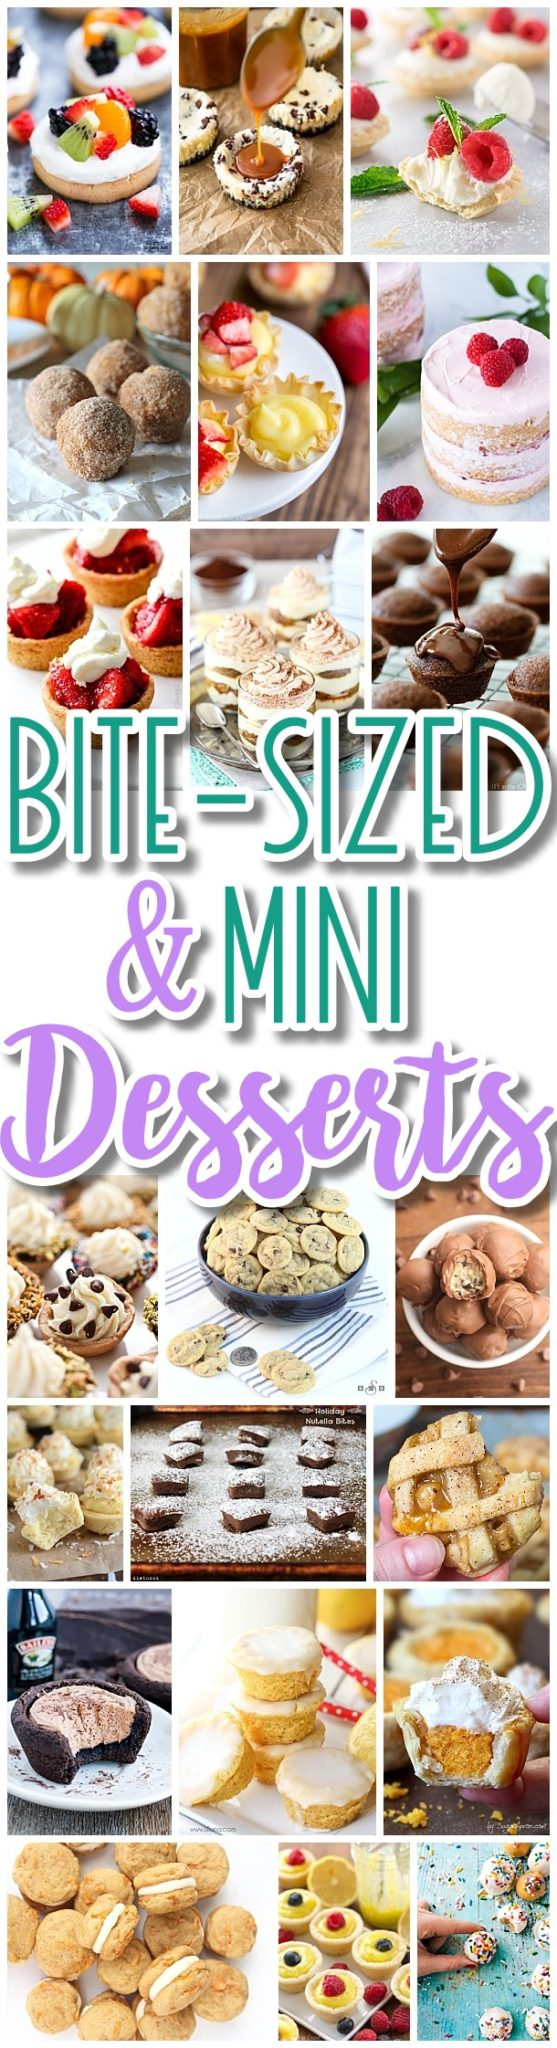 Yummy and Easy Bite Sized and Mini Desserts Treats Recipes - Perfect for Mother's Day and Easter Brunch menus! - The BEST Easy DIY Mother's Day Gifts and Treats Ideas - Holiday Craft Activity Projects, Free Printables and Favorite Brunch Desserts Recipes for Moms and Grandmas